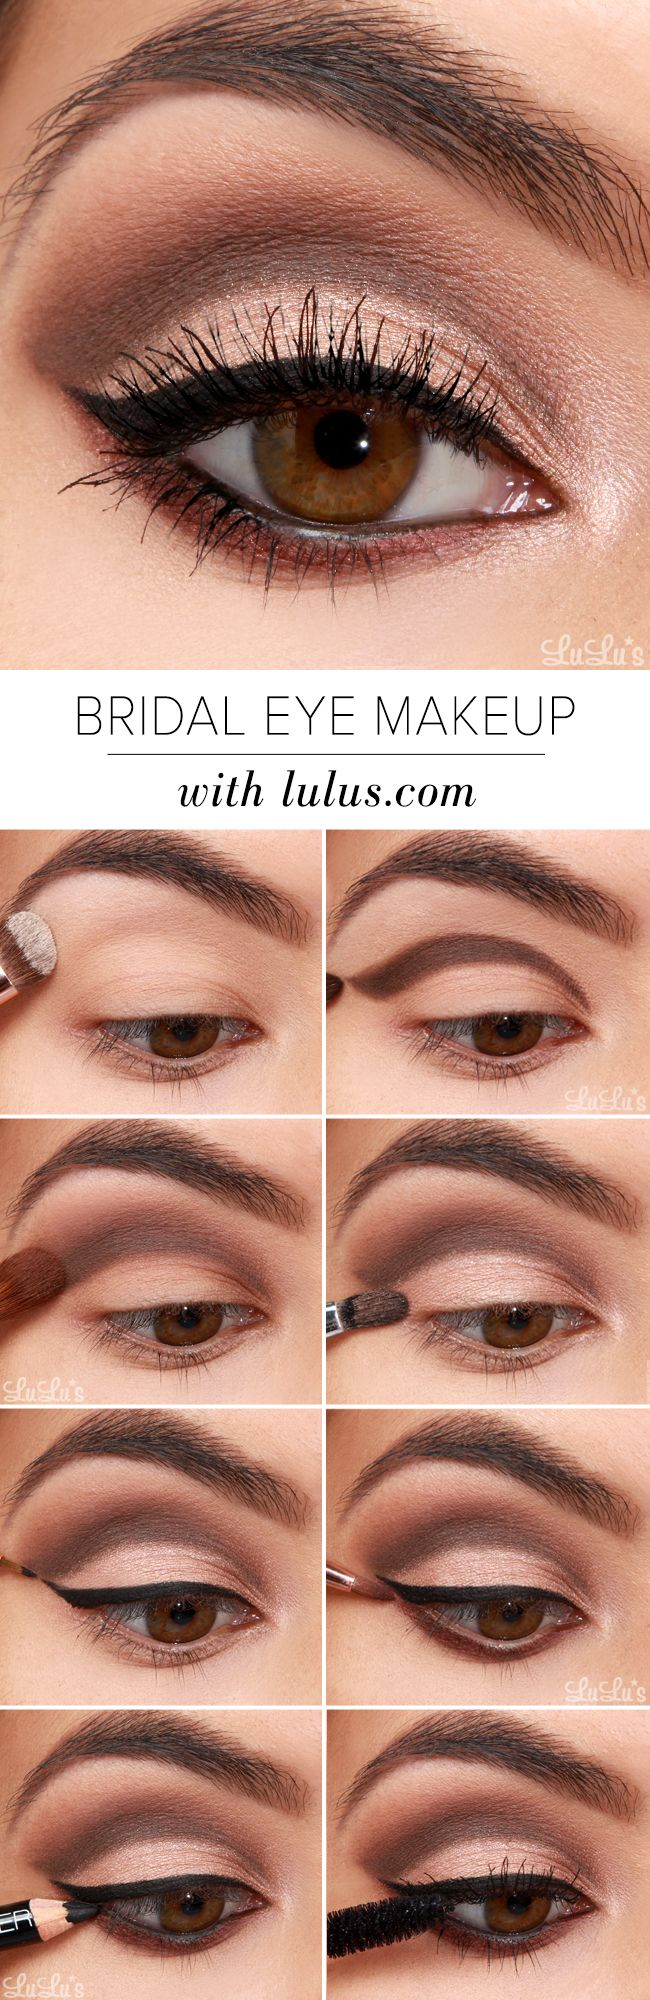 17 super basic eye makeup ideas for beginners - pretty designs